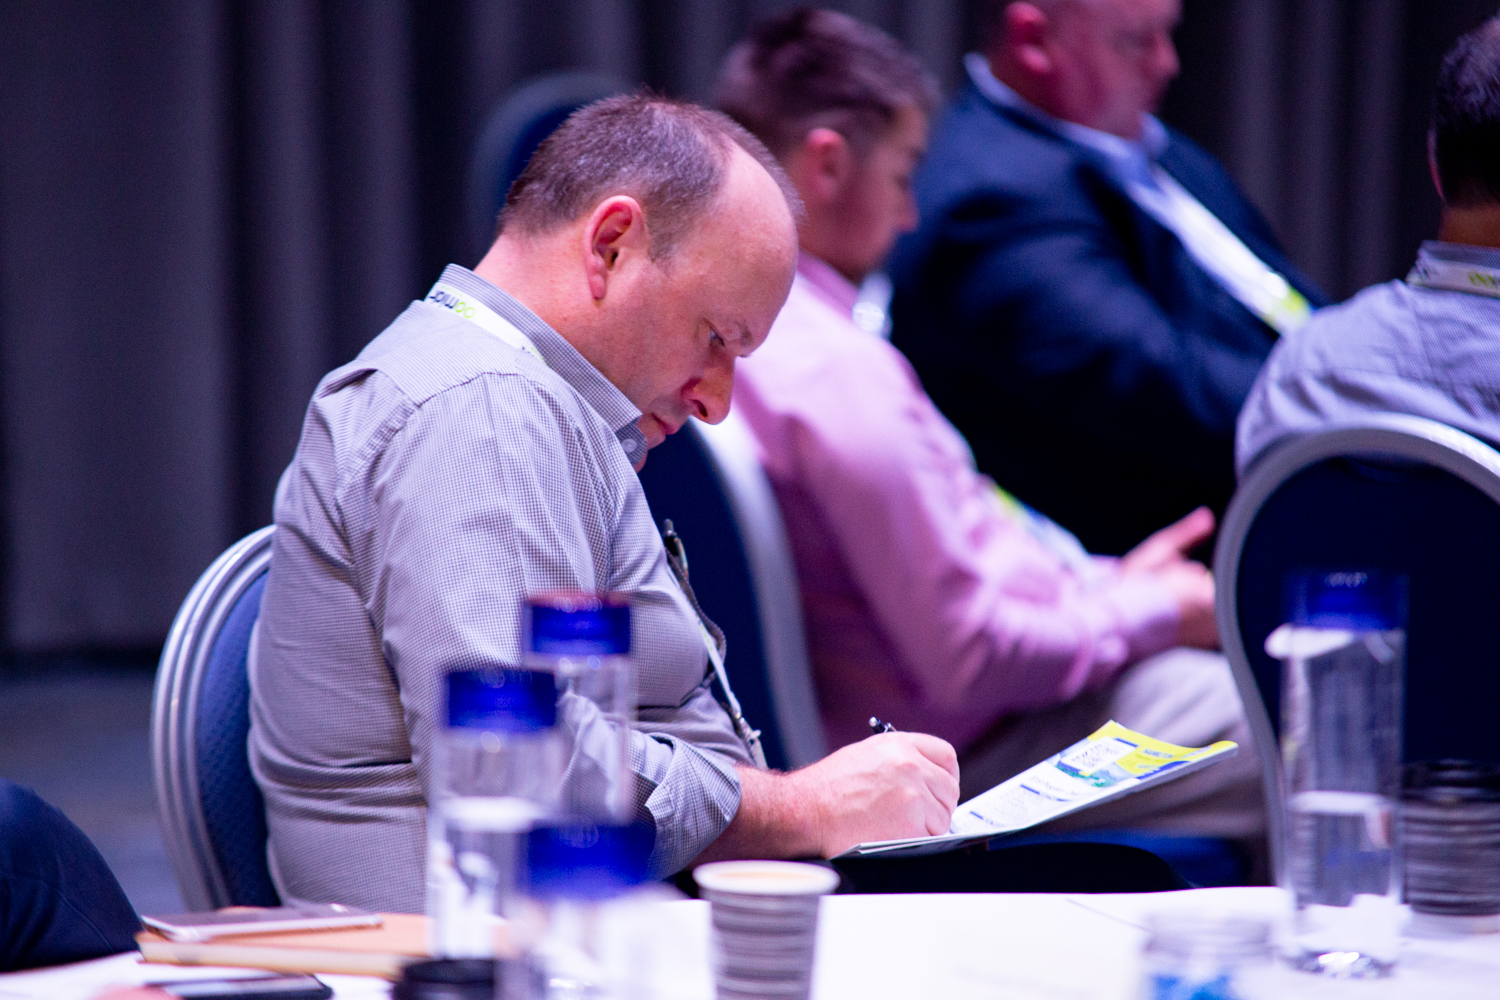 1908280062 RWTA Conferencing Session Highlights.jpg